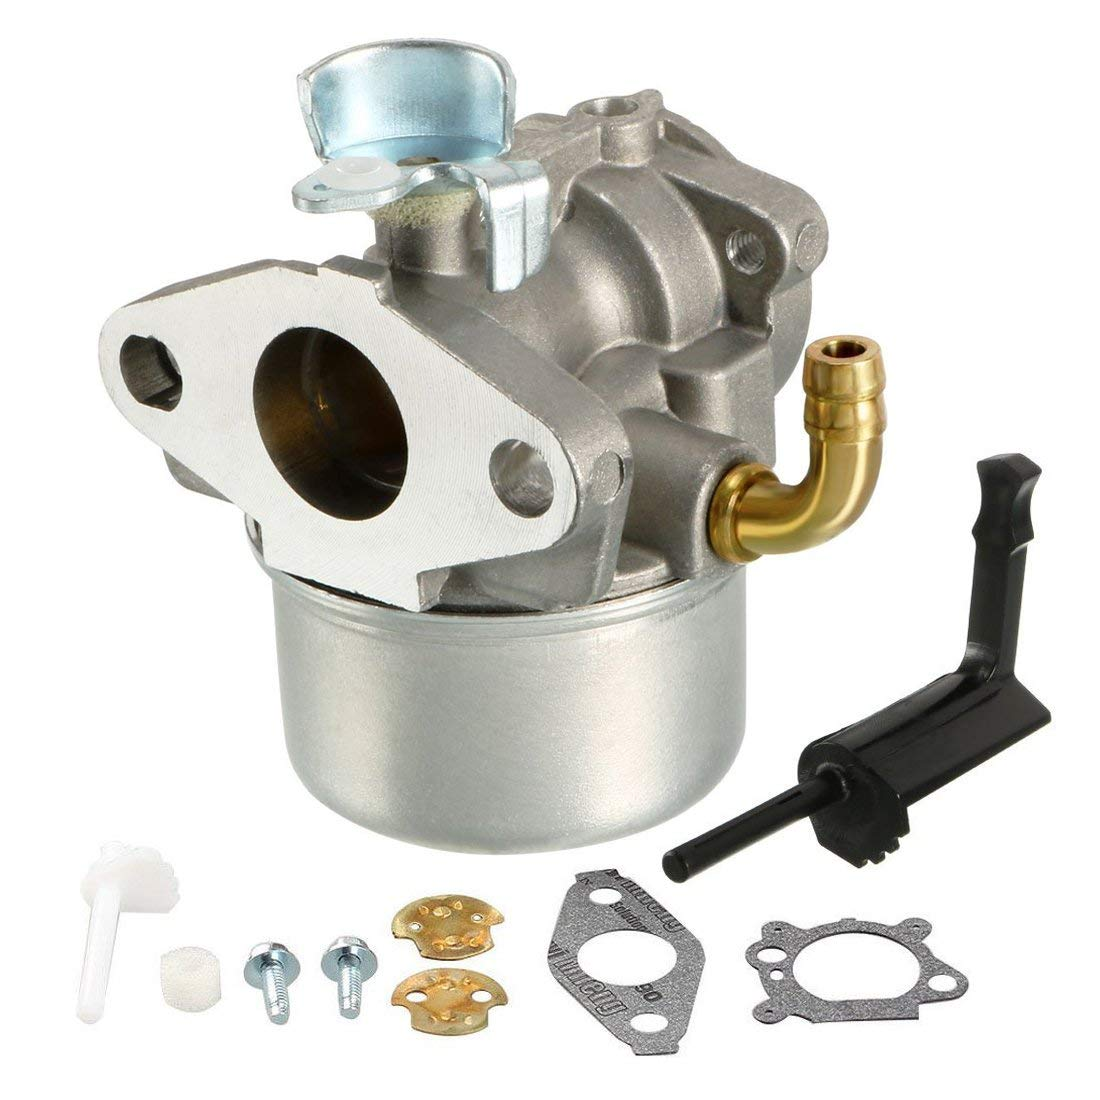 An Ruijia 798653 Carburetor for Briggs & Stratton 791077, 696981, 698860, 790182, 694508, 795069, 698859, 790180, 790290, 693865, 697354 Engine Carb with Gasket